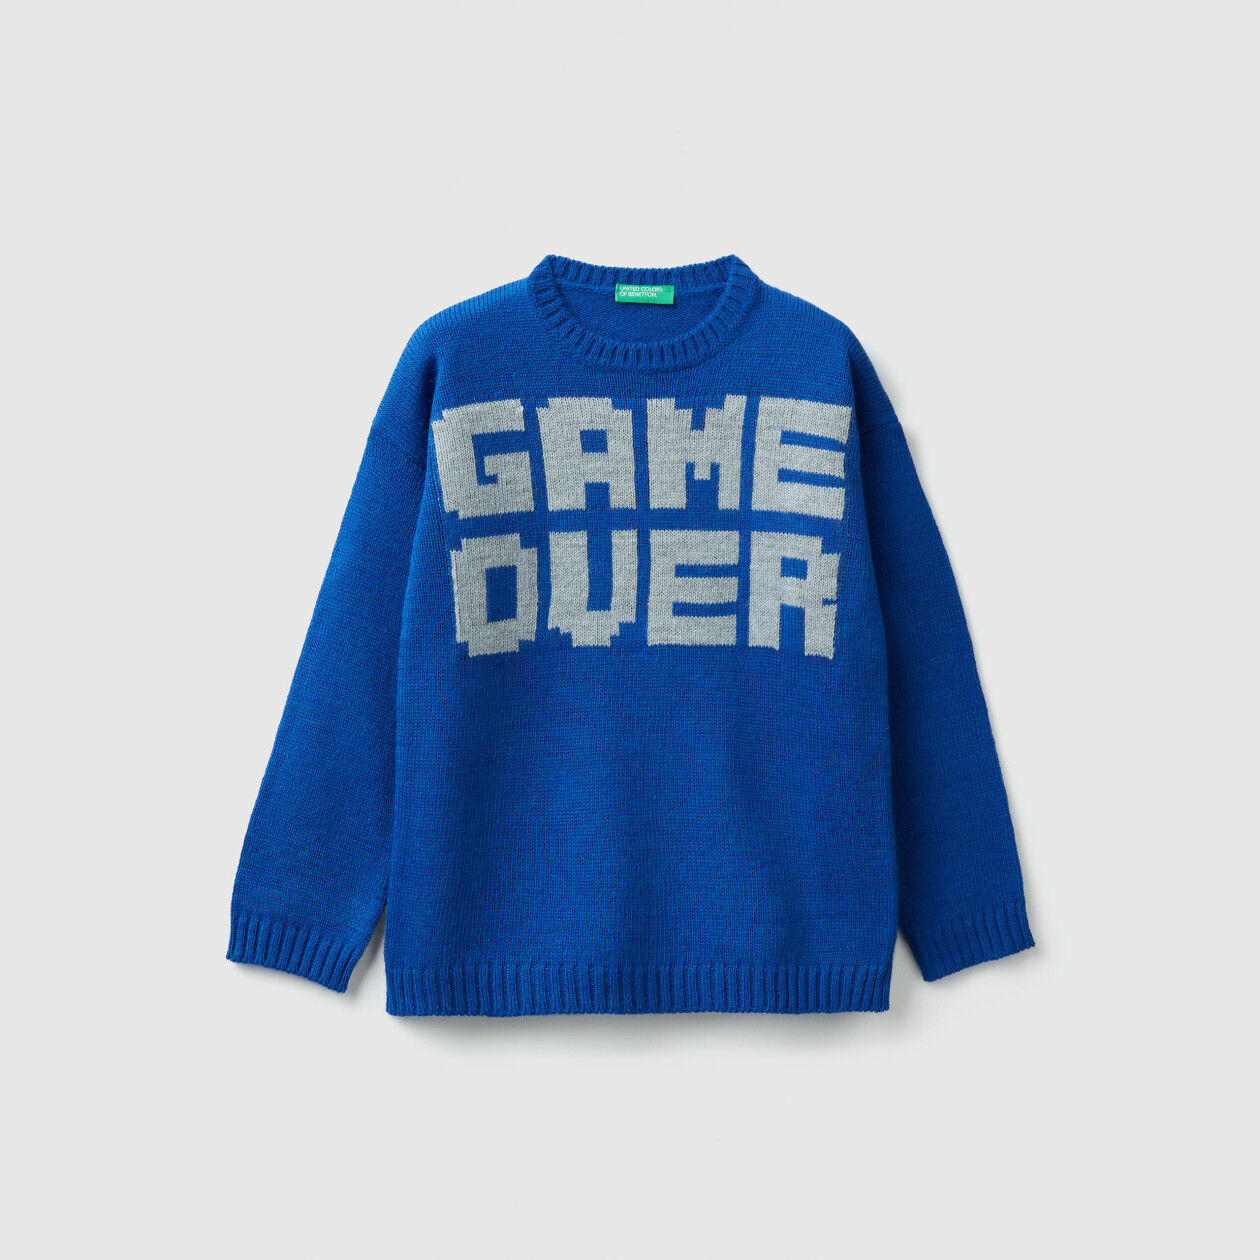 Tricot sweater with slogan